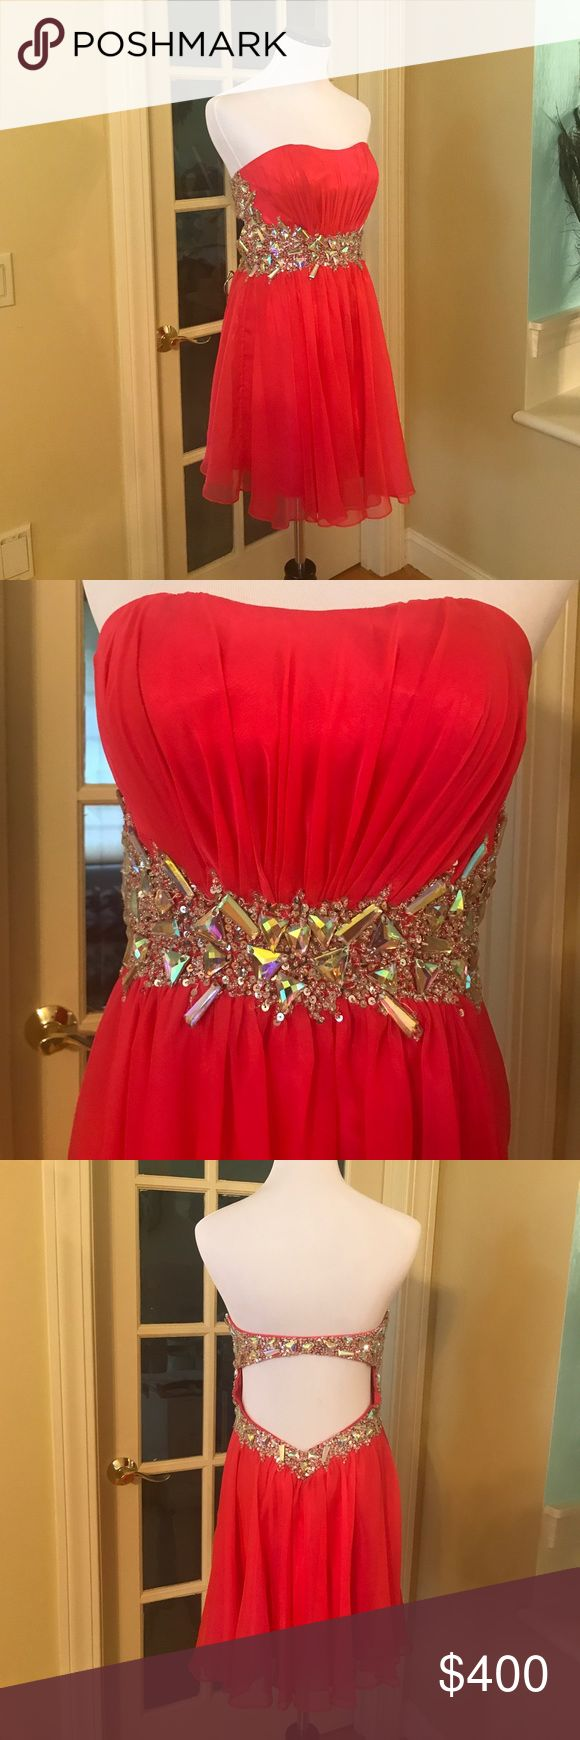 Cocktail dress Coral cocktail dress with heavy crystal and rhinestone embellishments. Strapless and low back makes this perfect to party in! Great for a prom or wedding. Only worn once, like new condition. Size 4 Dresses Strapless